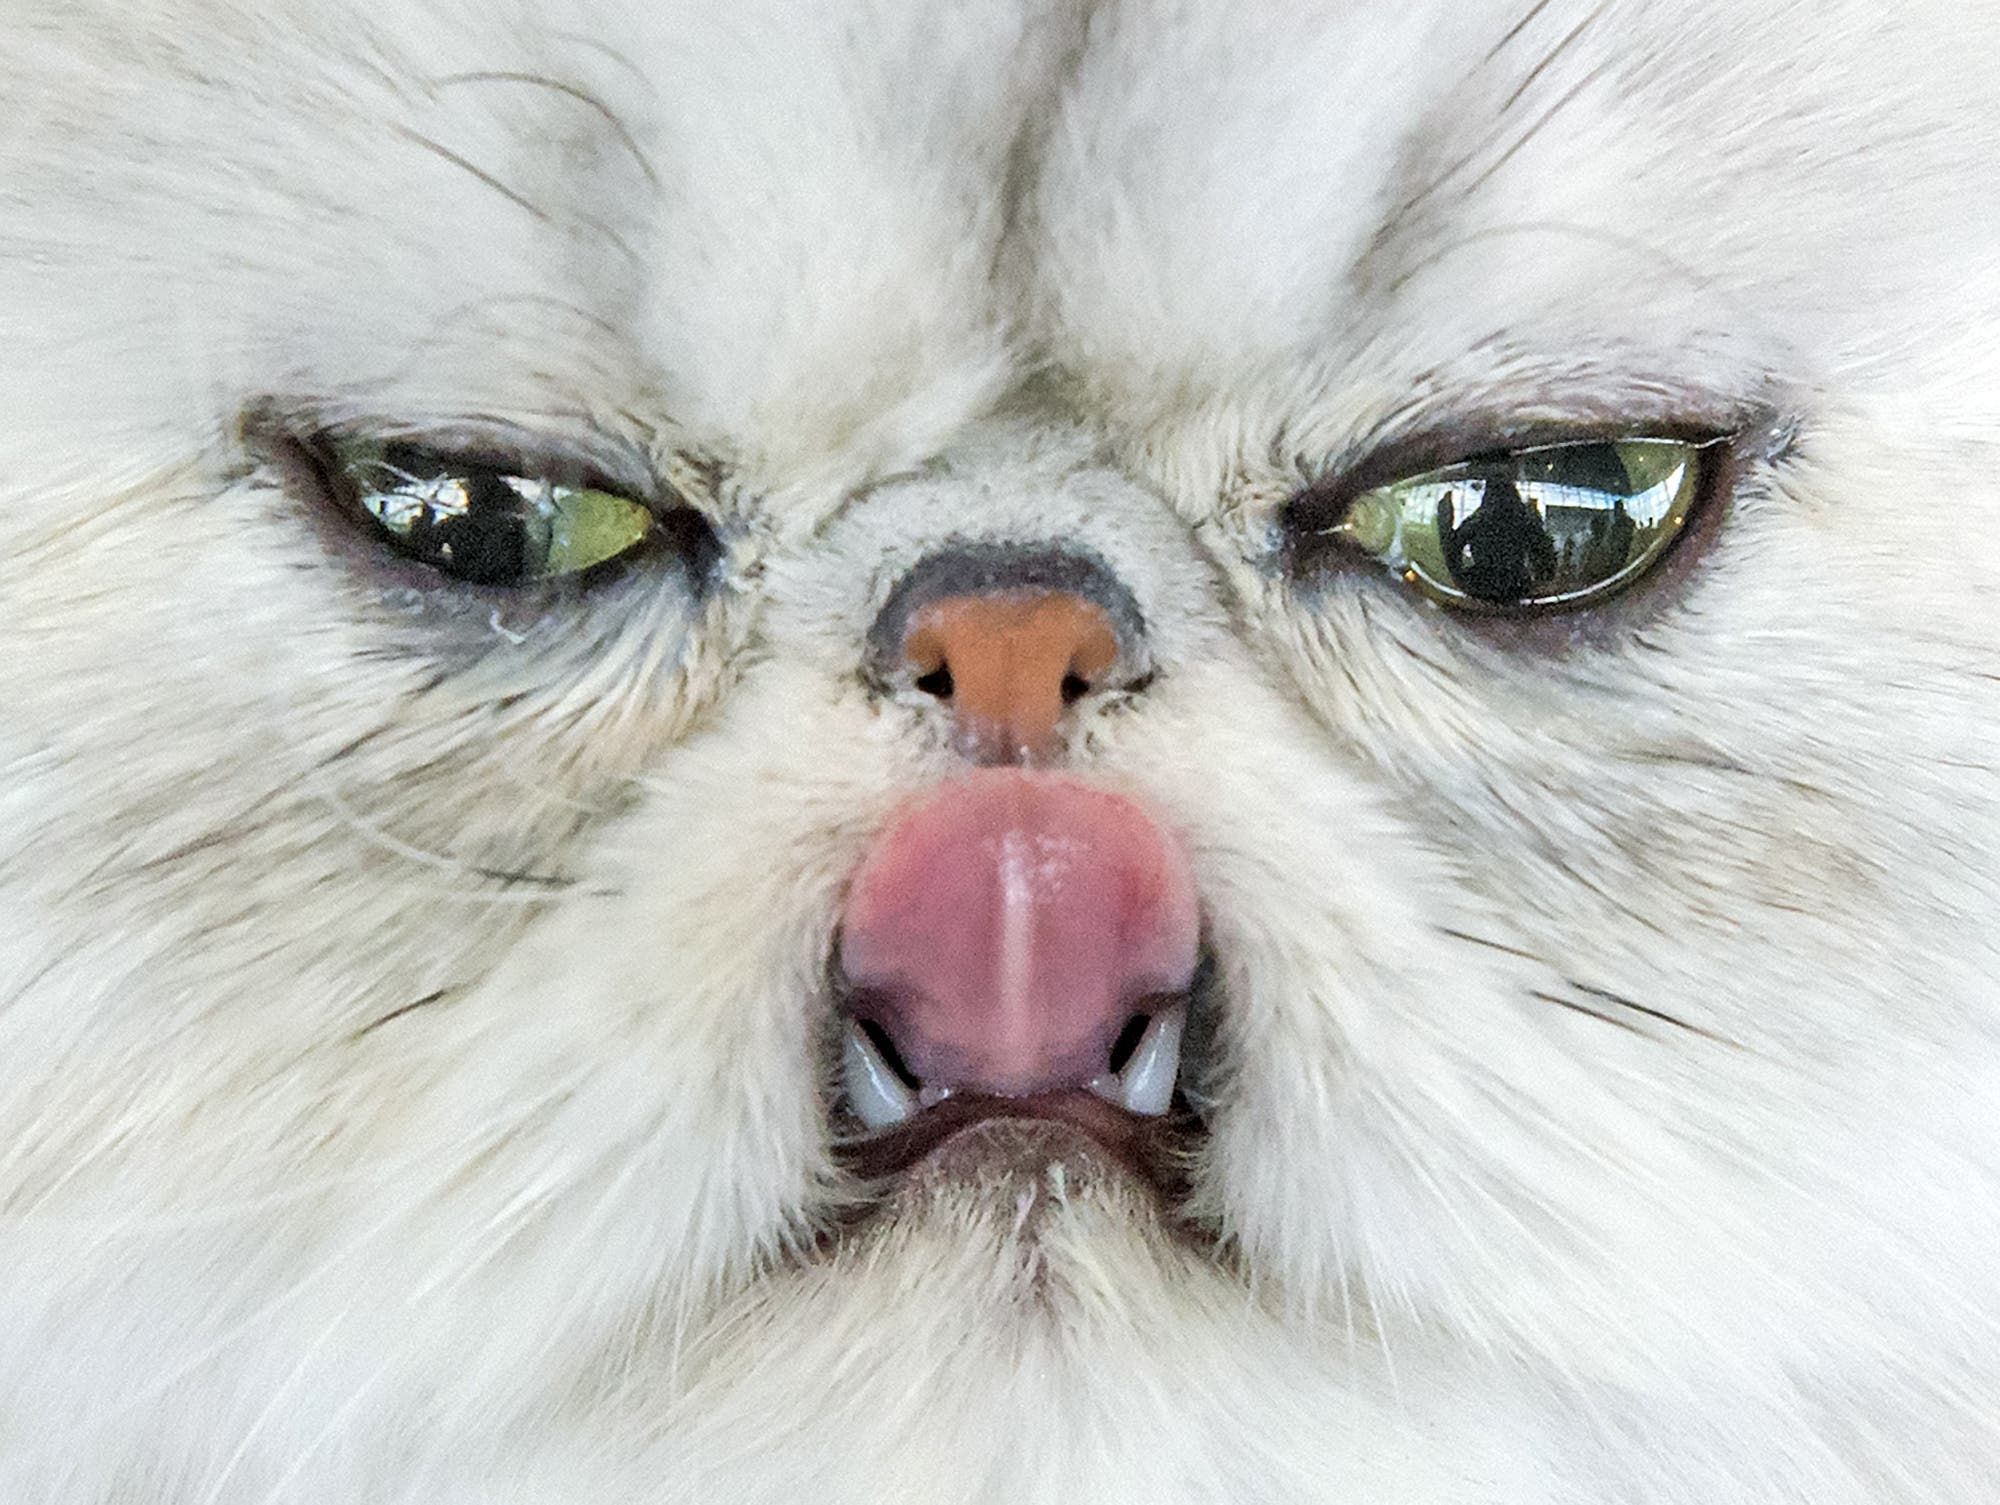 In this Saturday, June 20, 2015 file photo, a Persian cat sticks out its tongue during the International pedigree dog and purebred cat exhibition in Erfurt, Germany. Dogs and cats from 21 countries take part at the exhibition and competitions. (AP Photo/Jens Meyer, File)